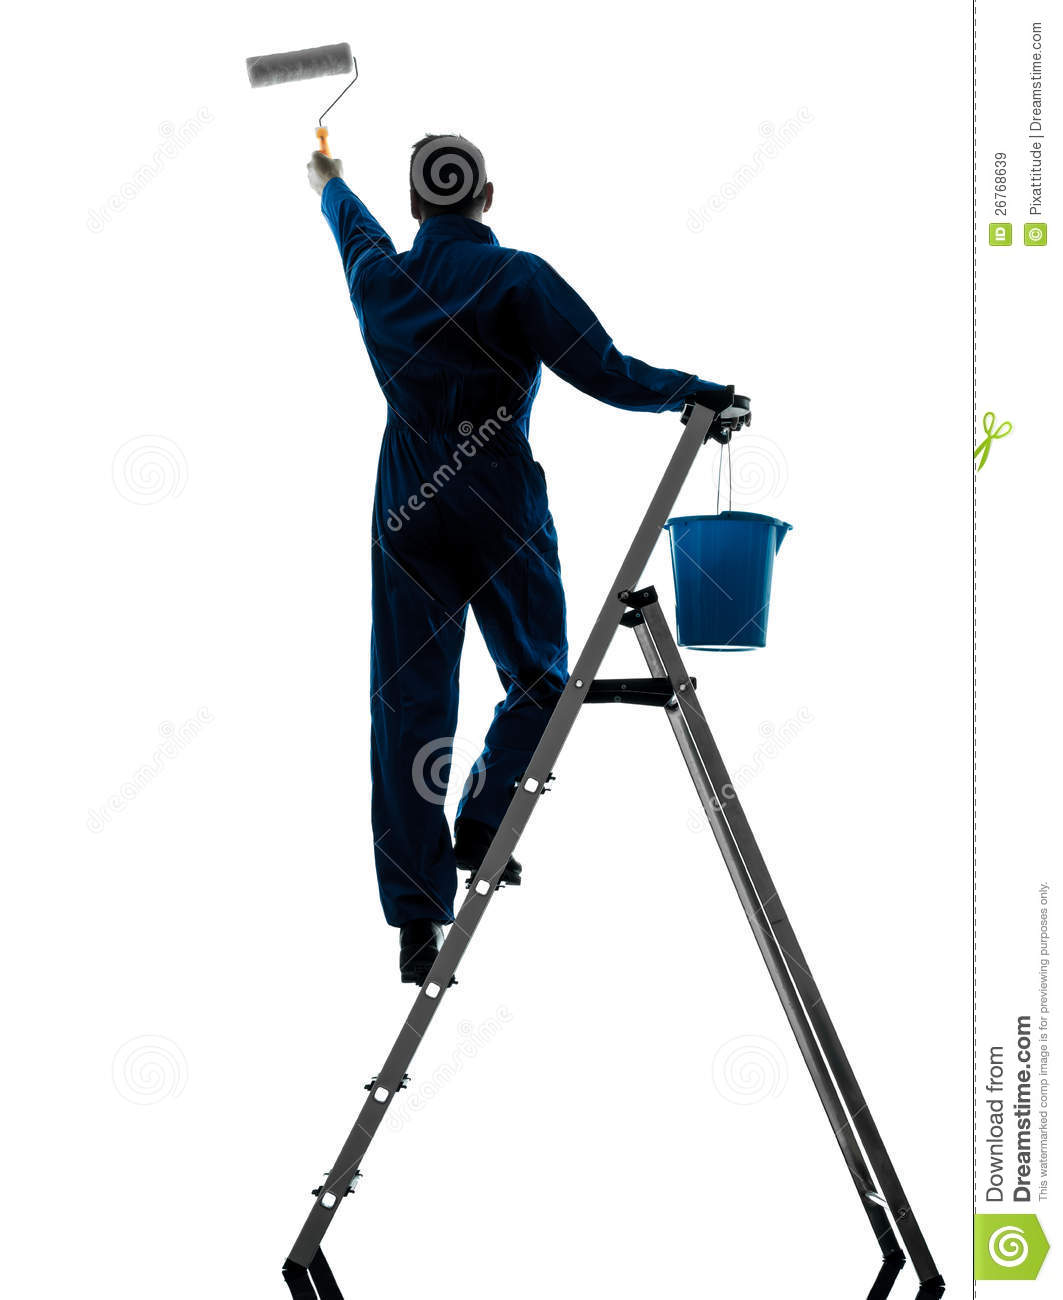 Man House Painter Worker Silhouette Royalty Free Stock Images - Image: 26768639